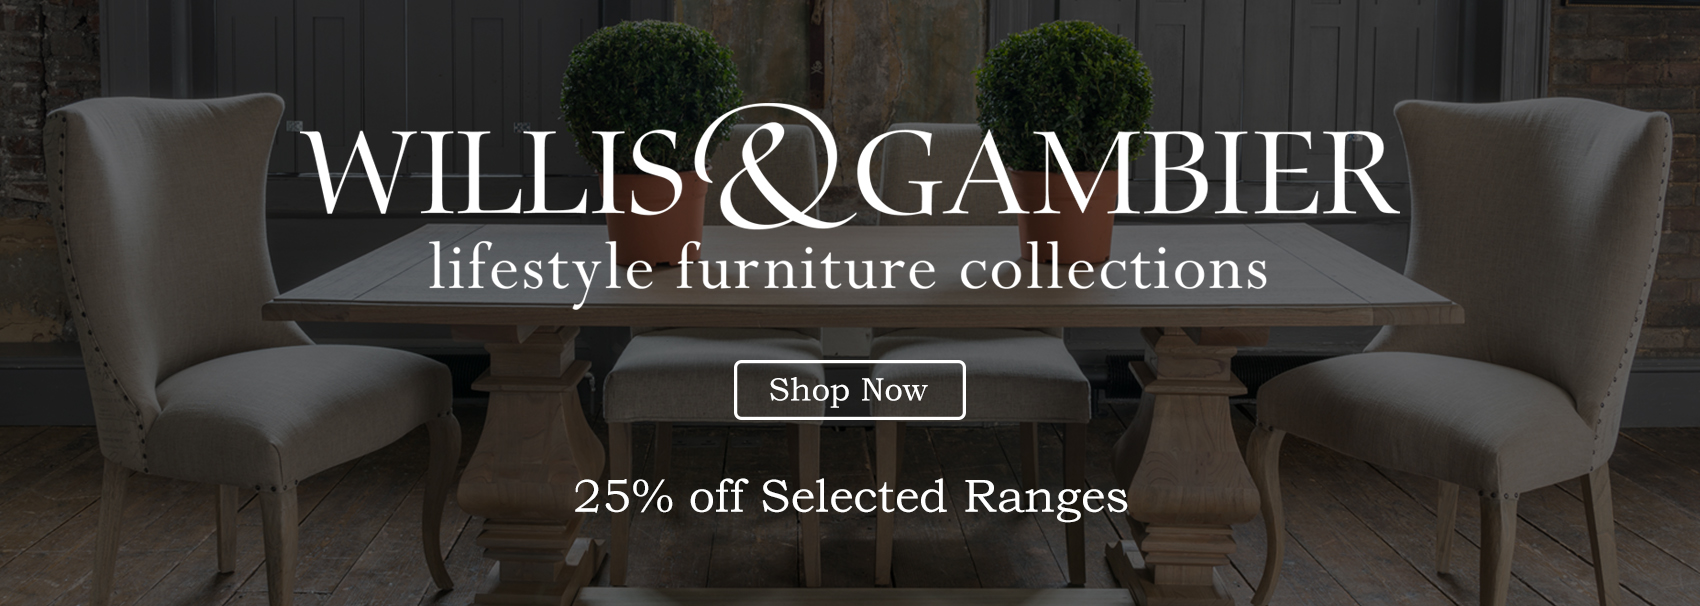 Michael O'Connor Furniture home of top  furniture brands like Willis and Gambier, ALF Italia, Bentley Designs and more at the best price online